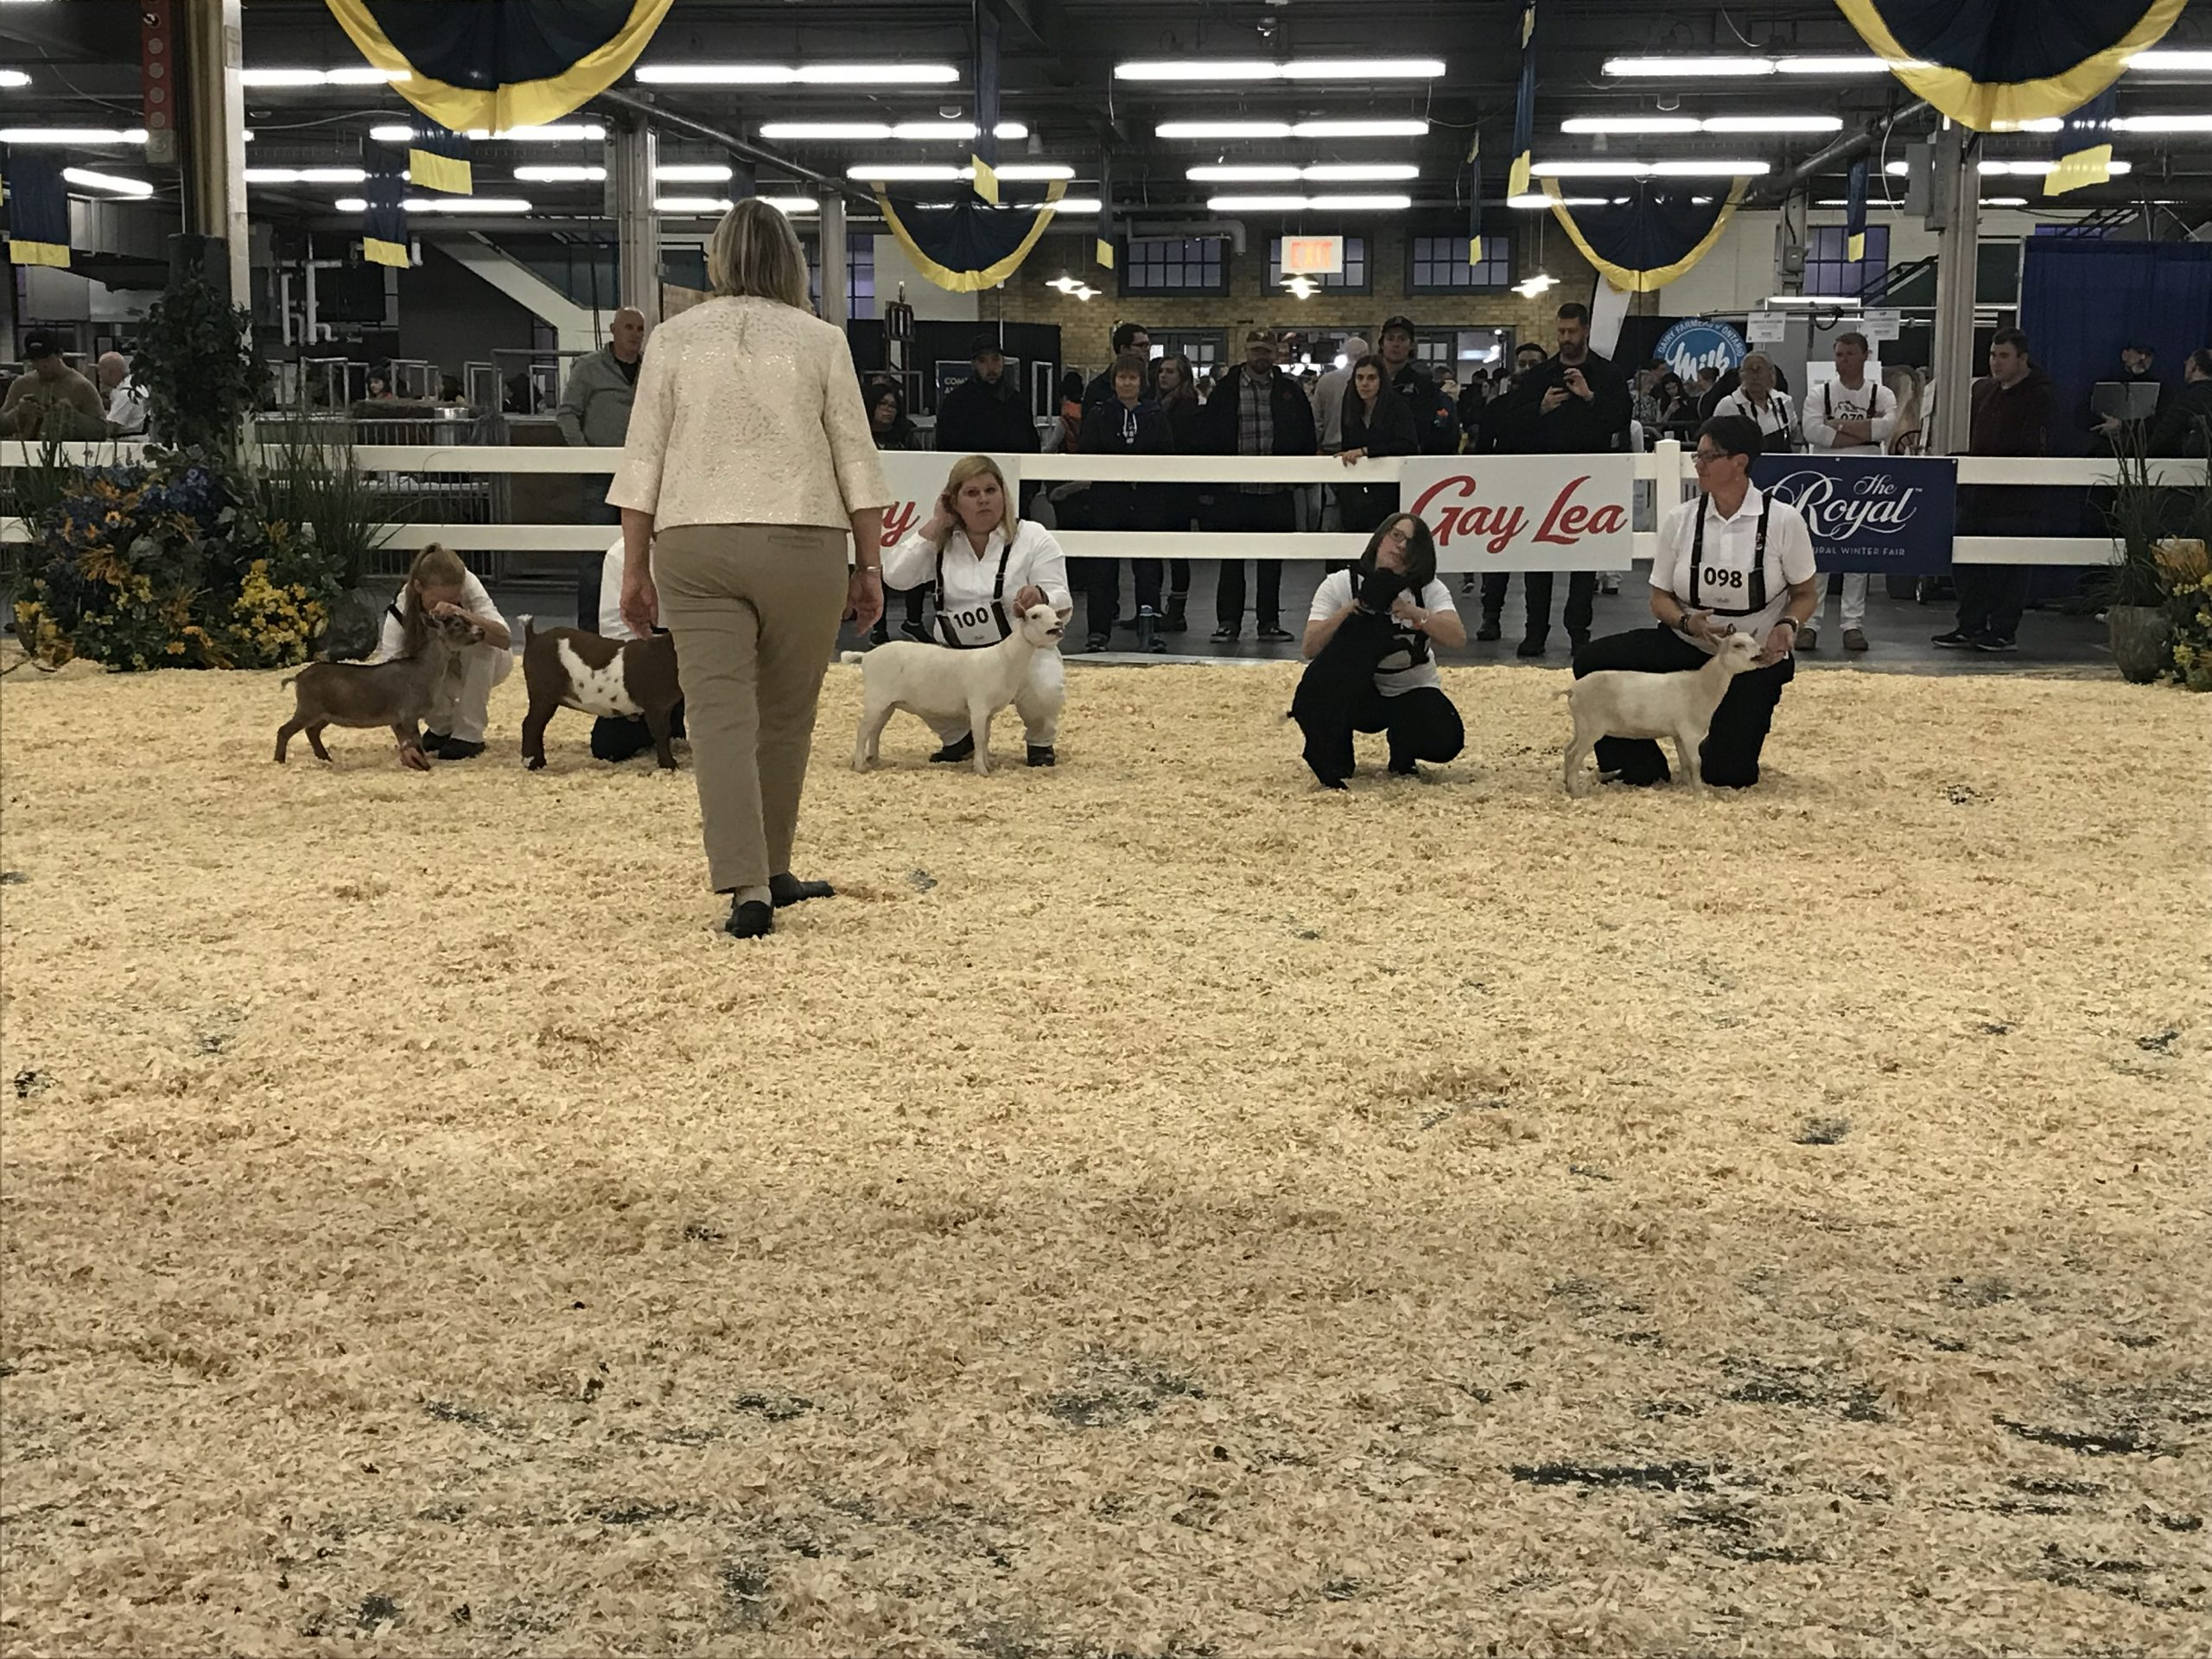 Future of farming looks bright at the Royal Agricultural Winter Fair